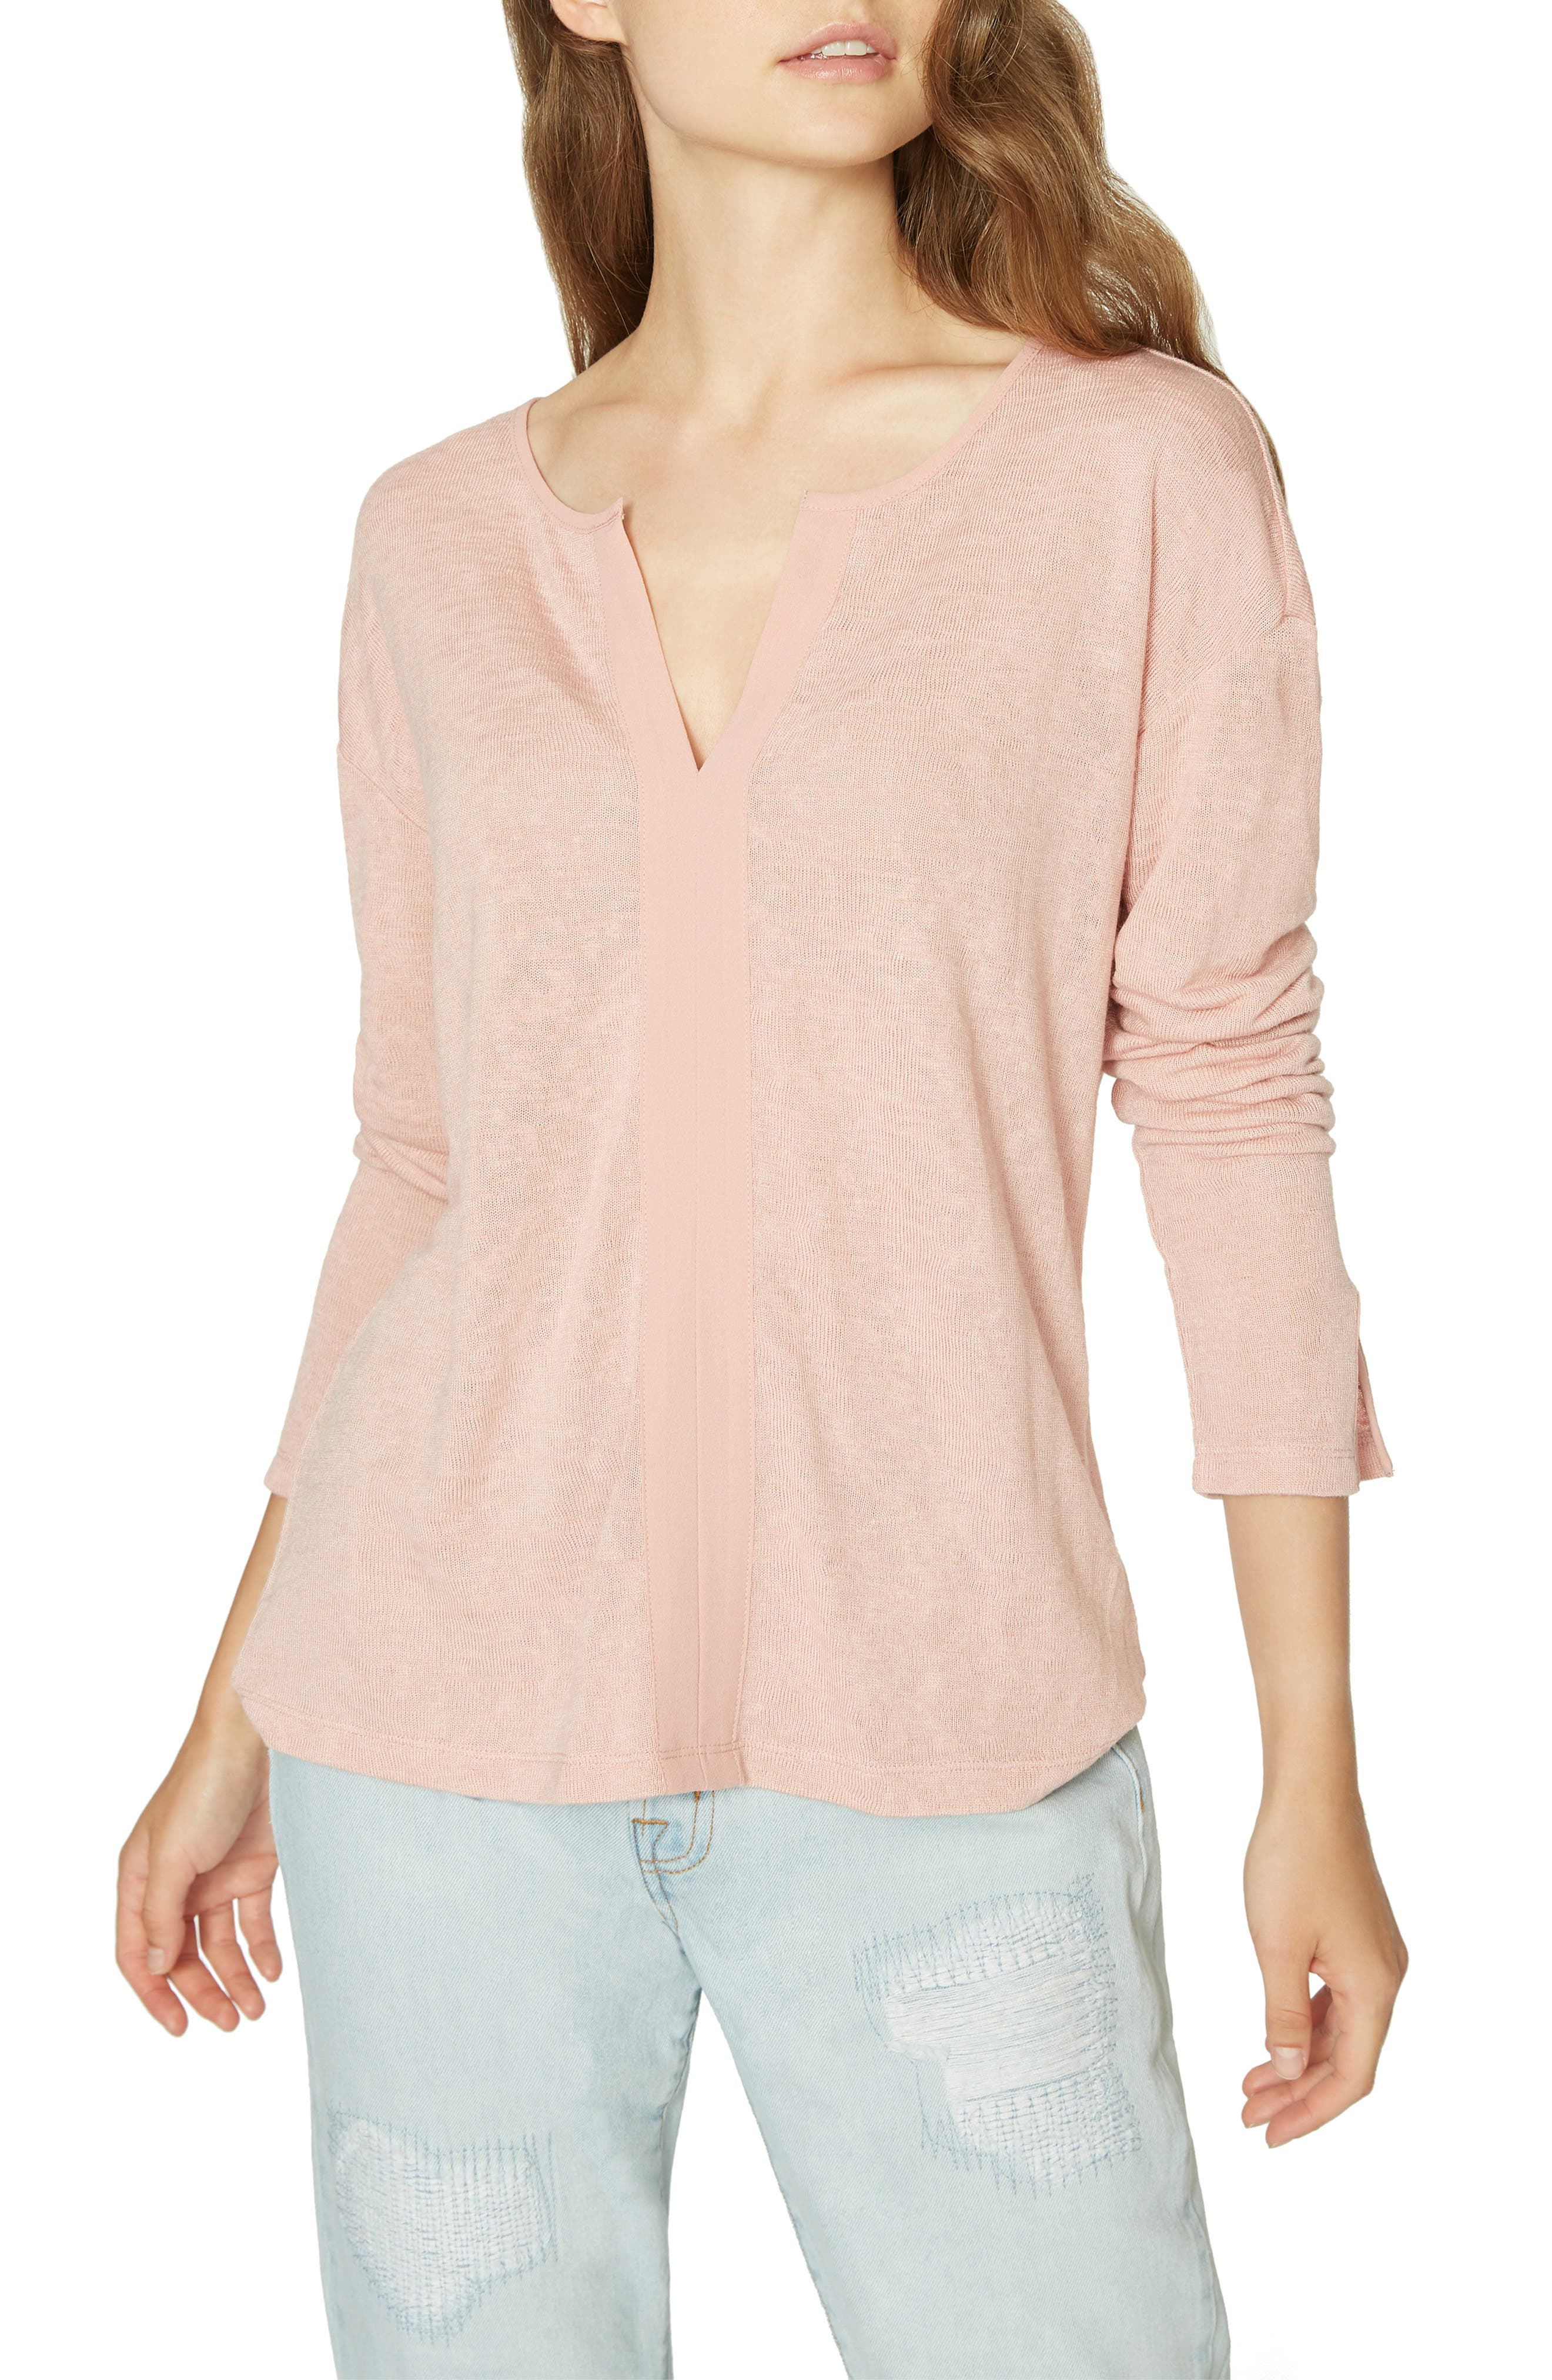 Sienna Mix Top,                             Main thumbnail 1, color,                             PINK SCOTCH